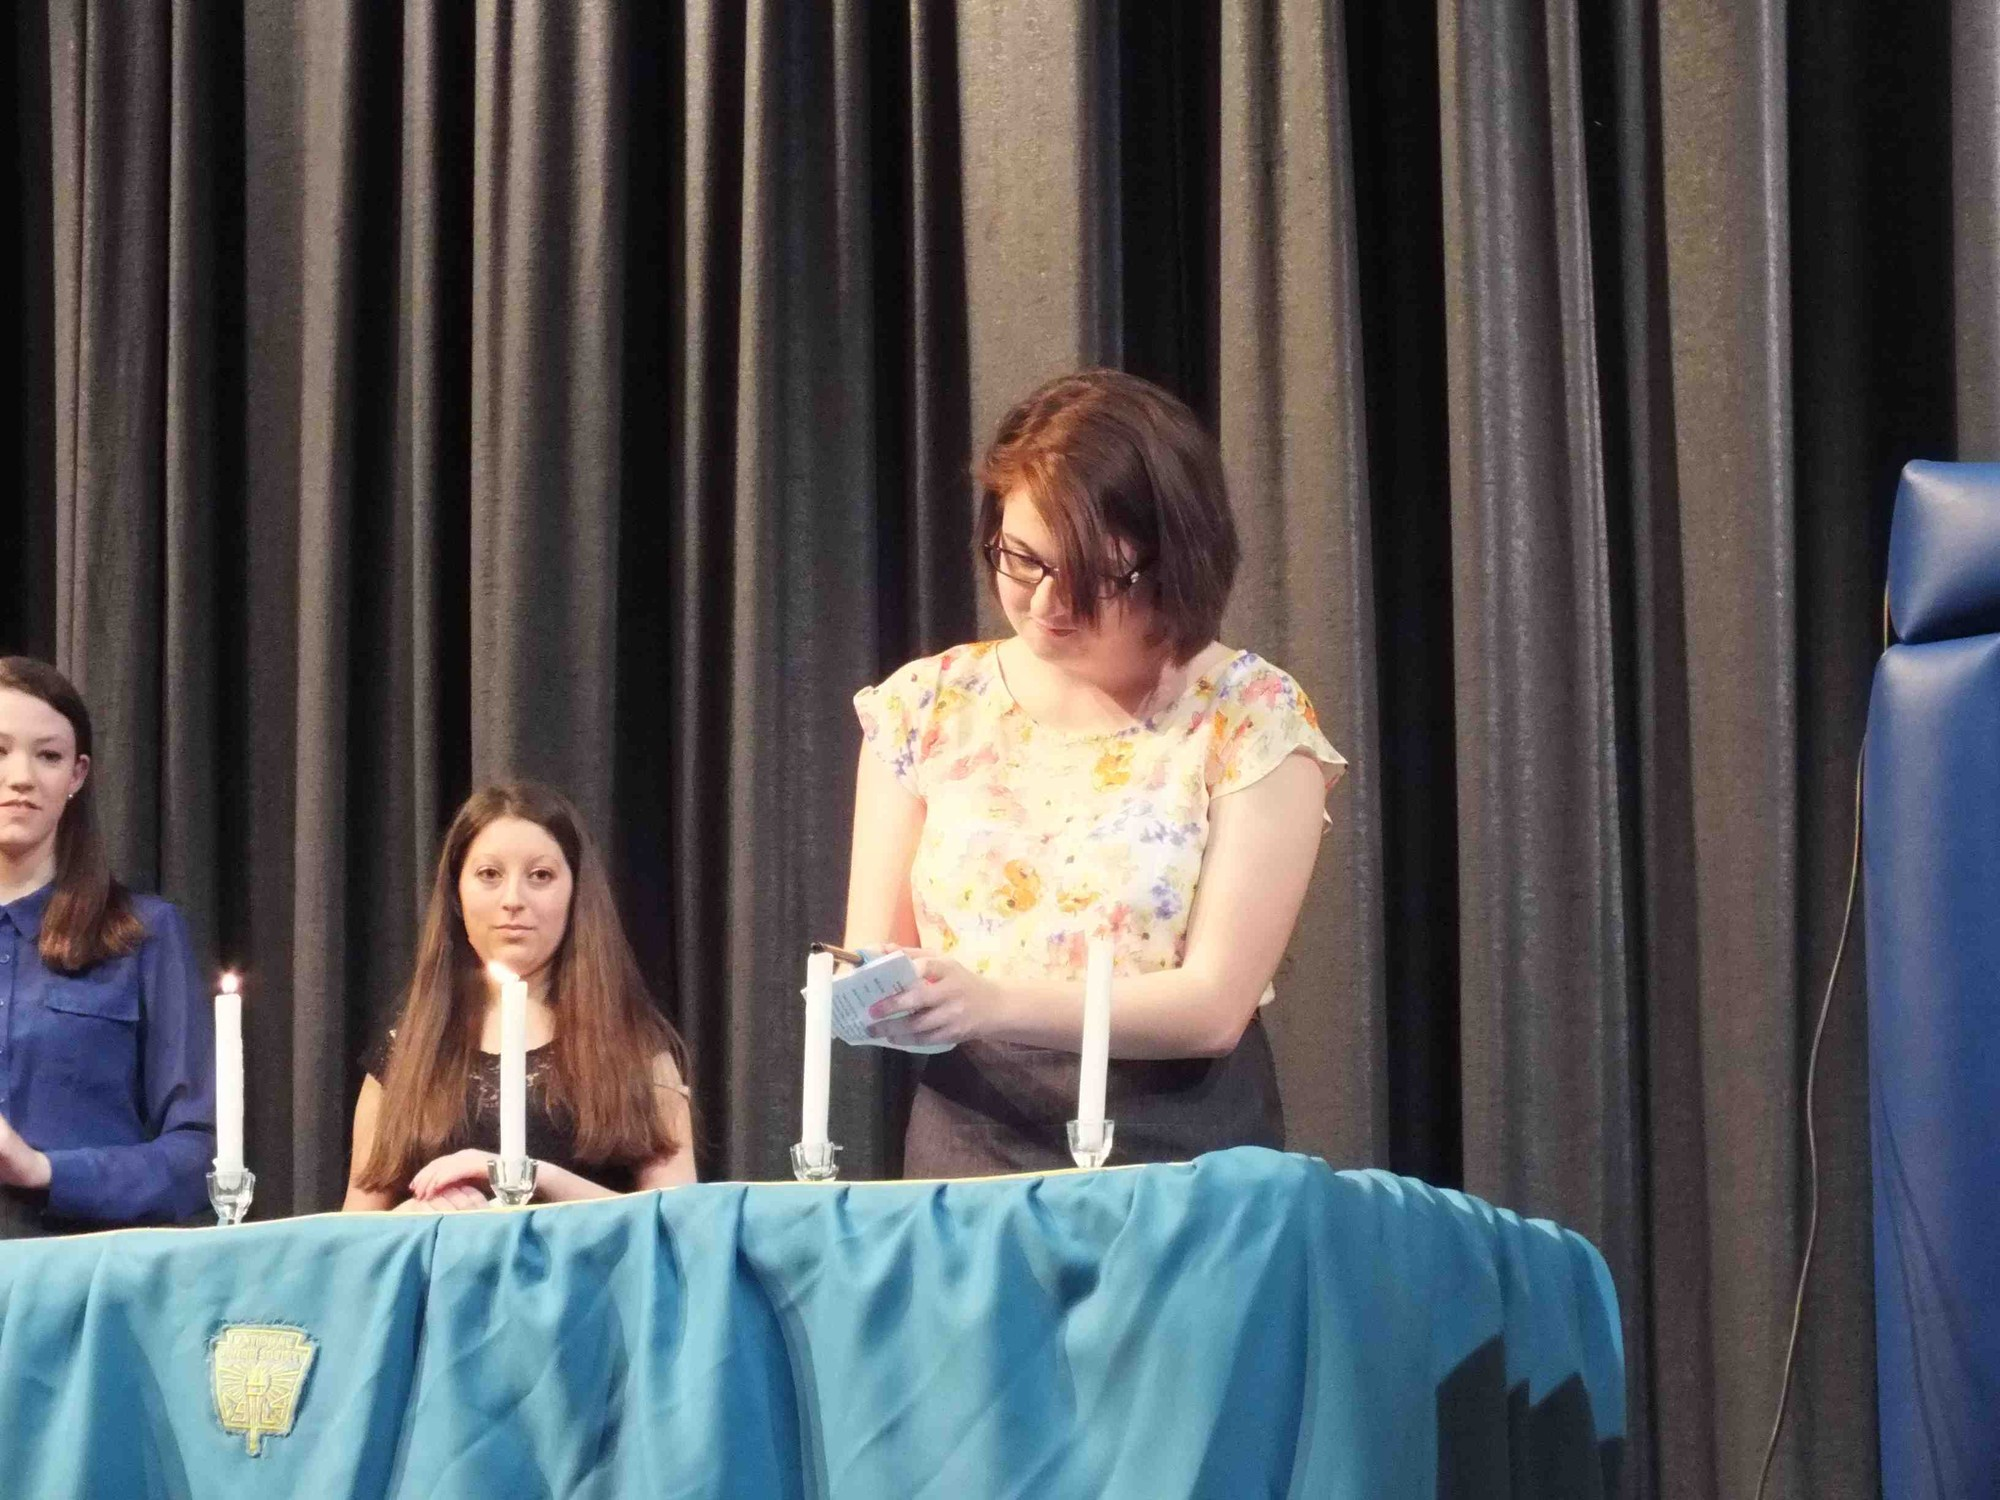 Sarah Bilello took part in the candle-lighting ceremony at the Calhoun High School National Honor Society induction ceremony.